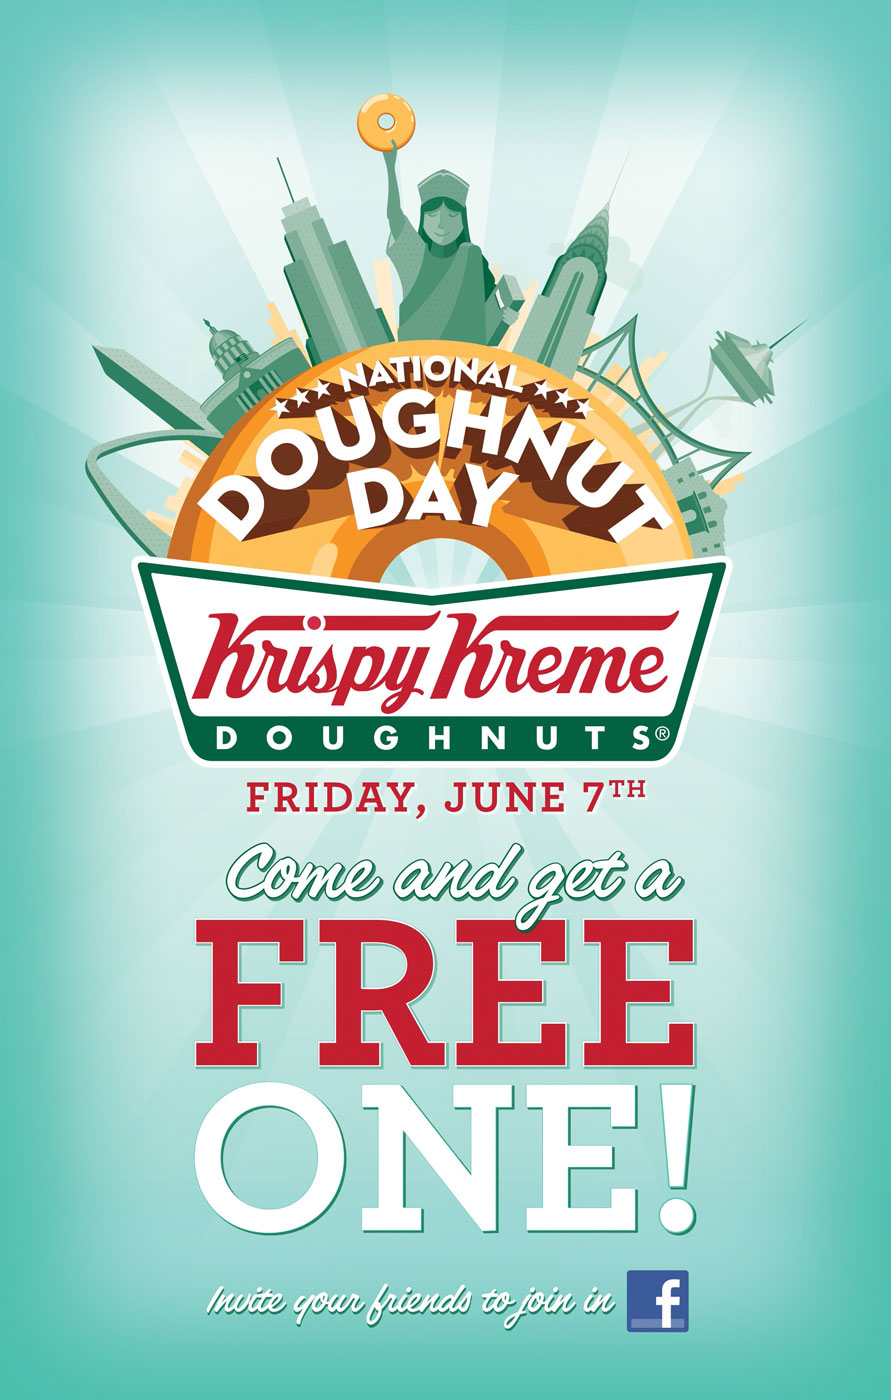 National Doughnut Day Poster